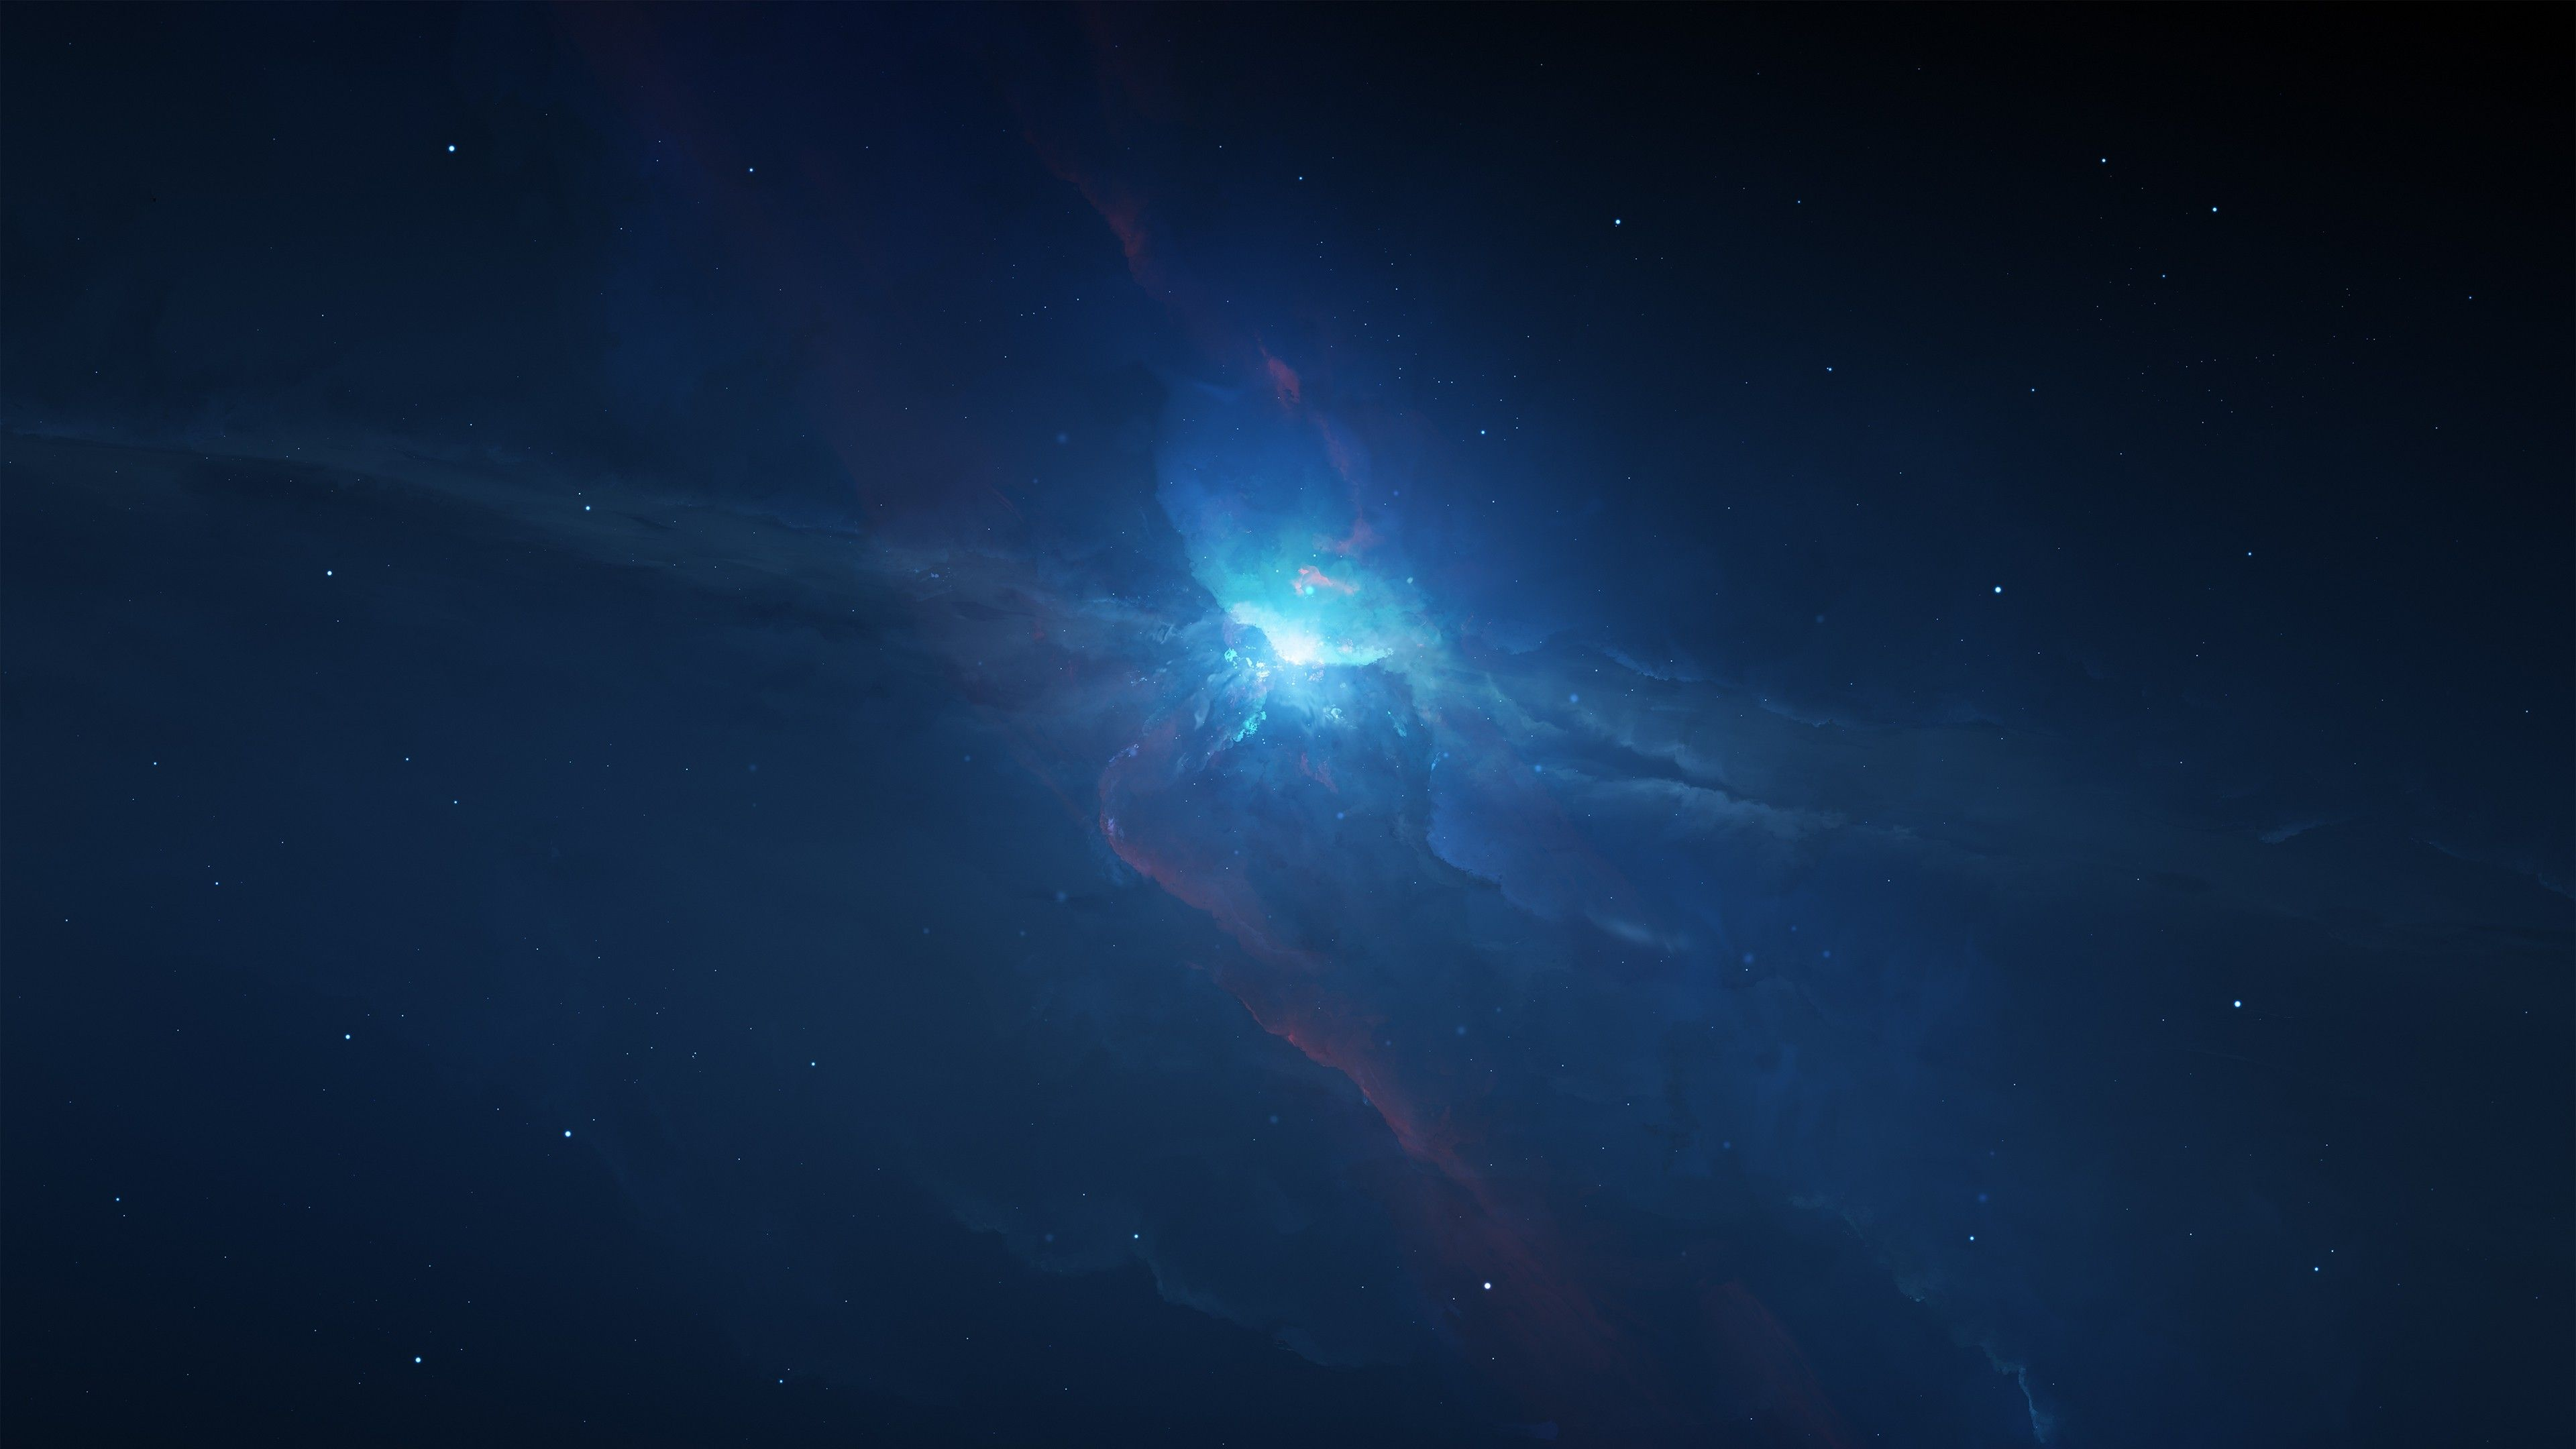 4k Space Wallpapers Top Free 4k Space Backgrounds